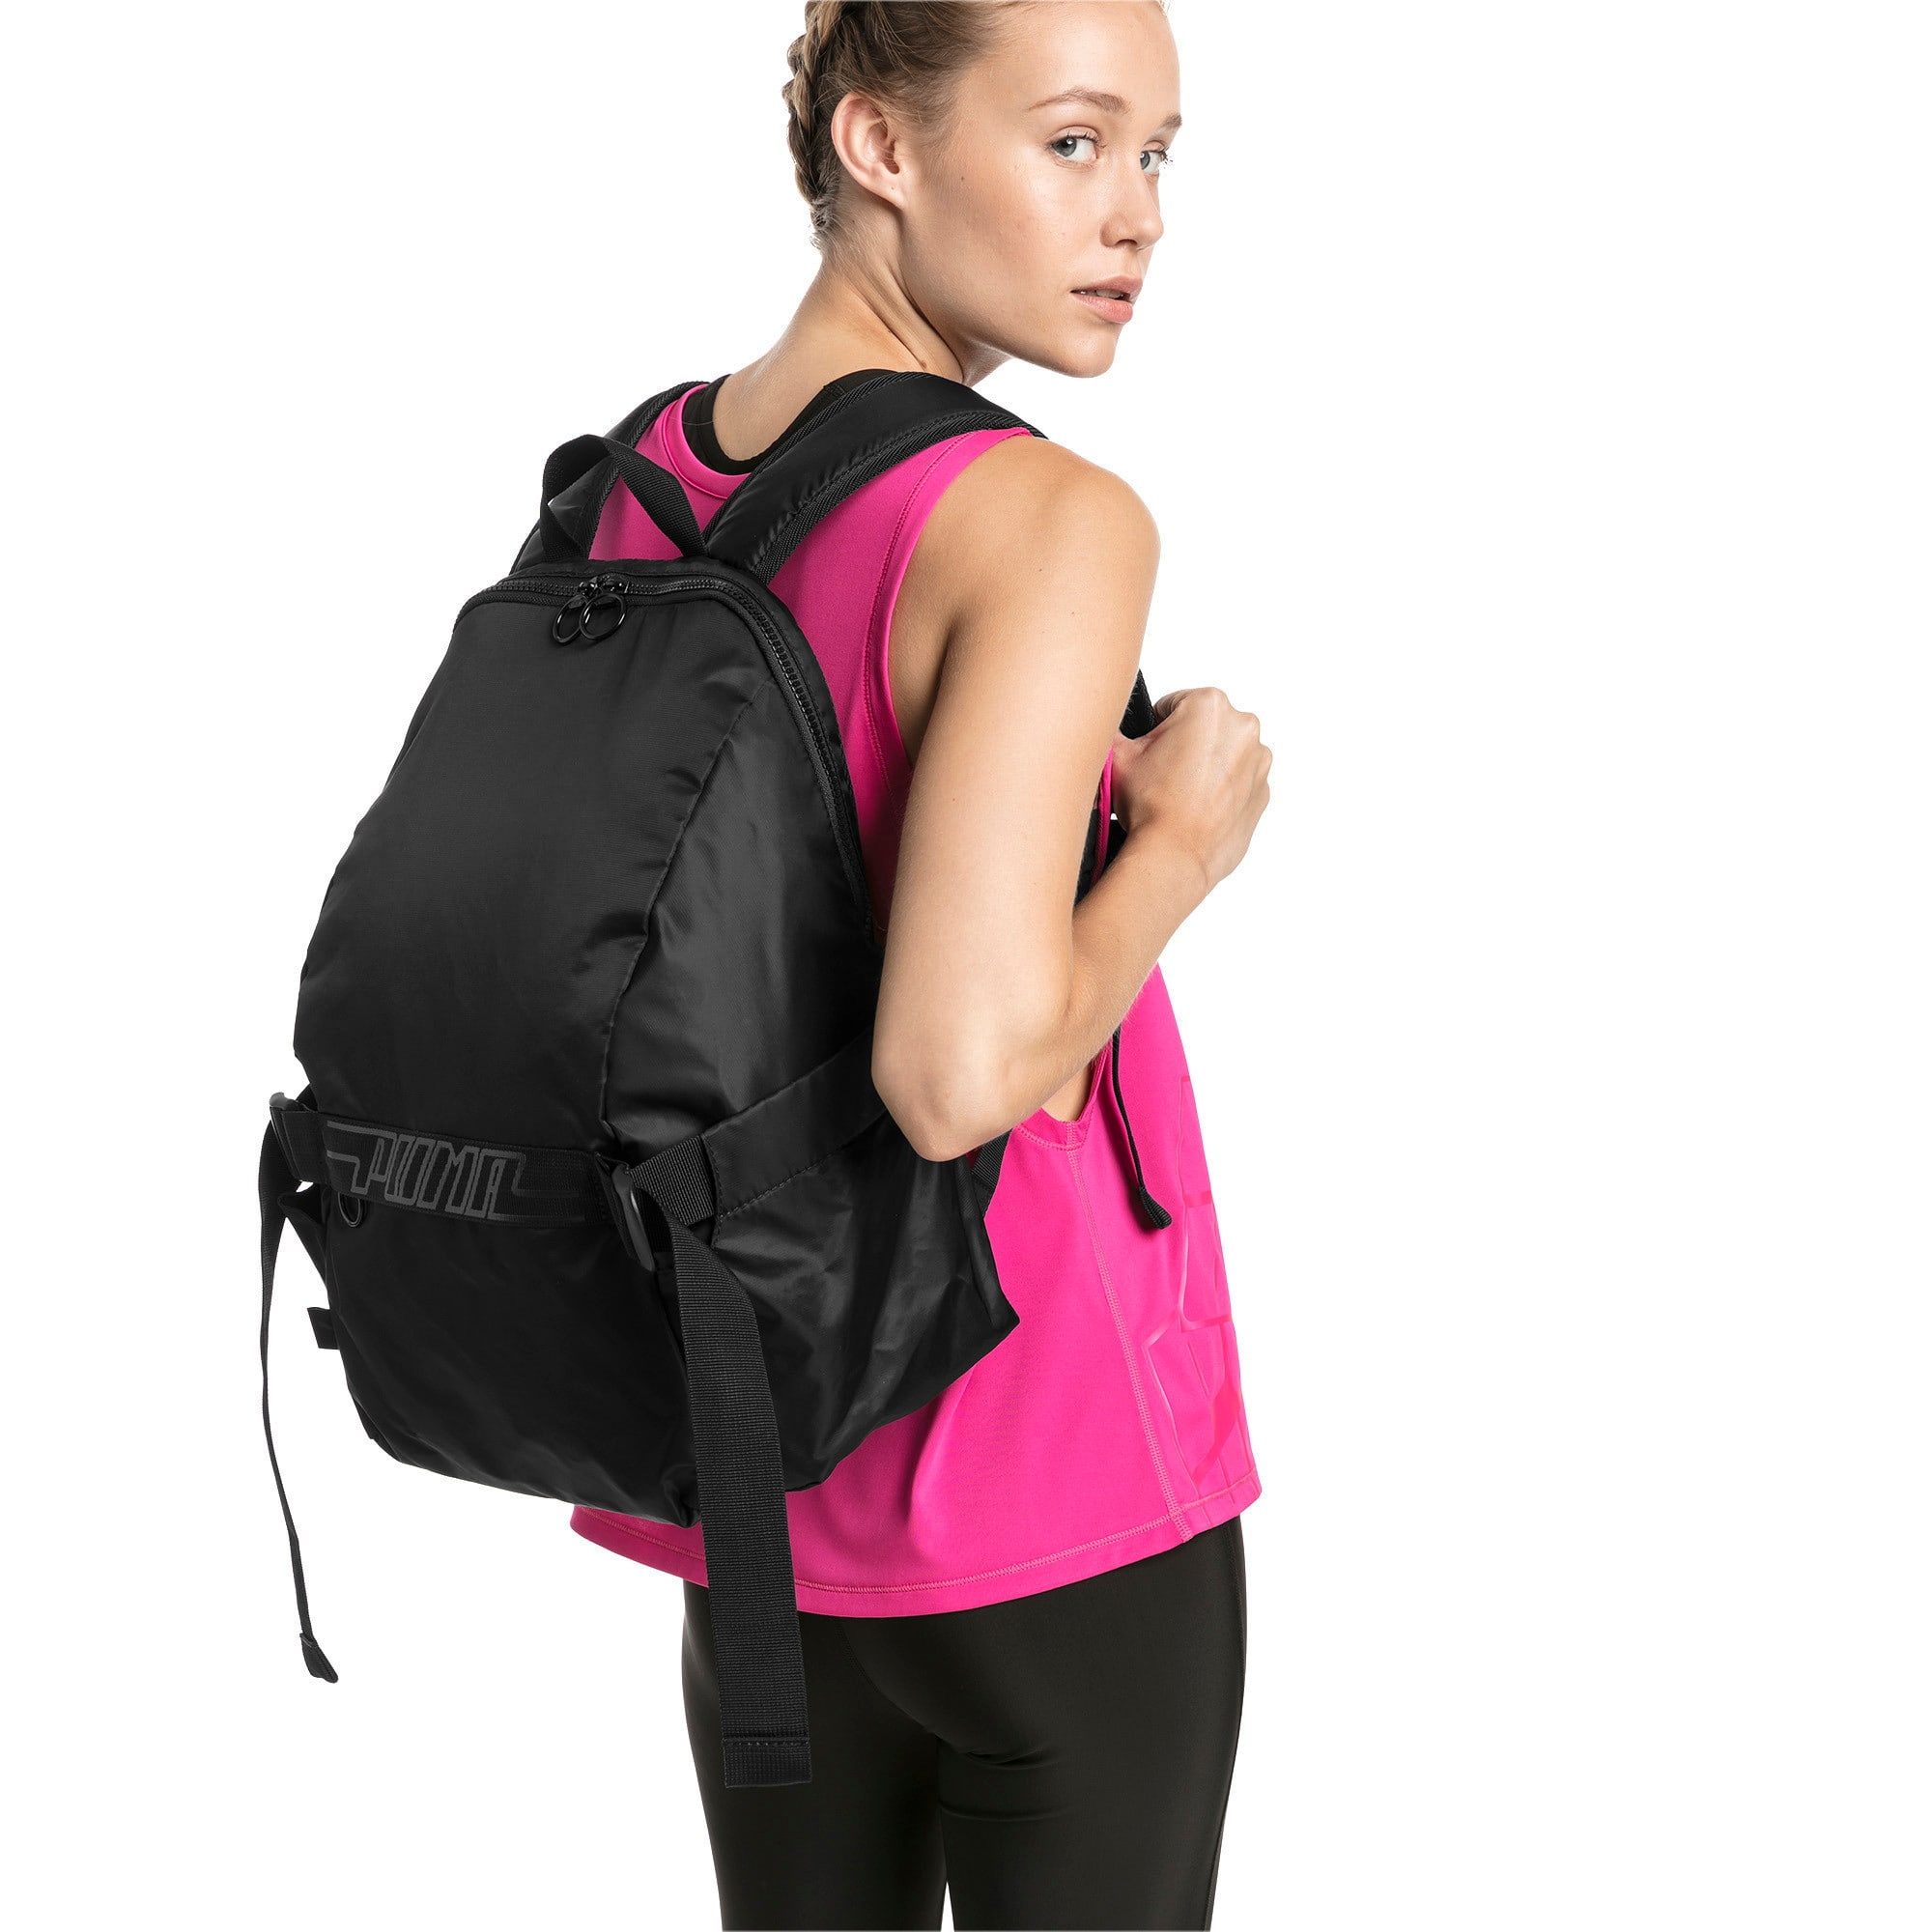 Thumbnail 2 of Cosmic Backpack, Puma Black, medium